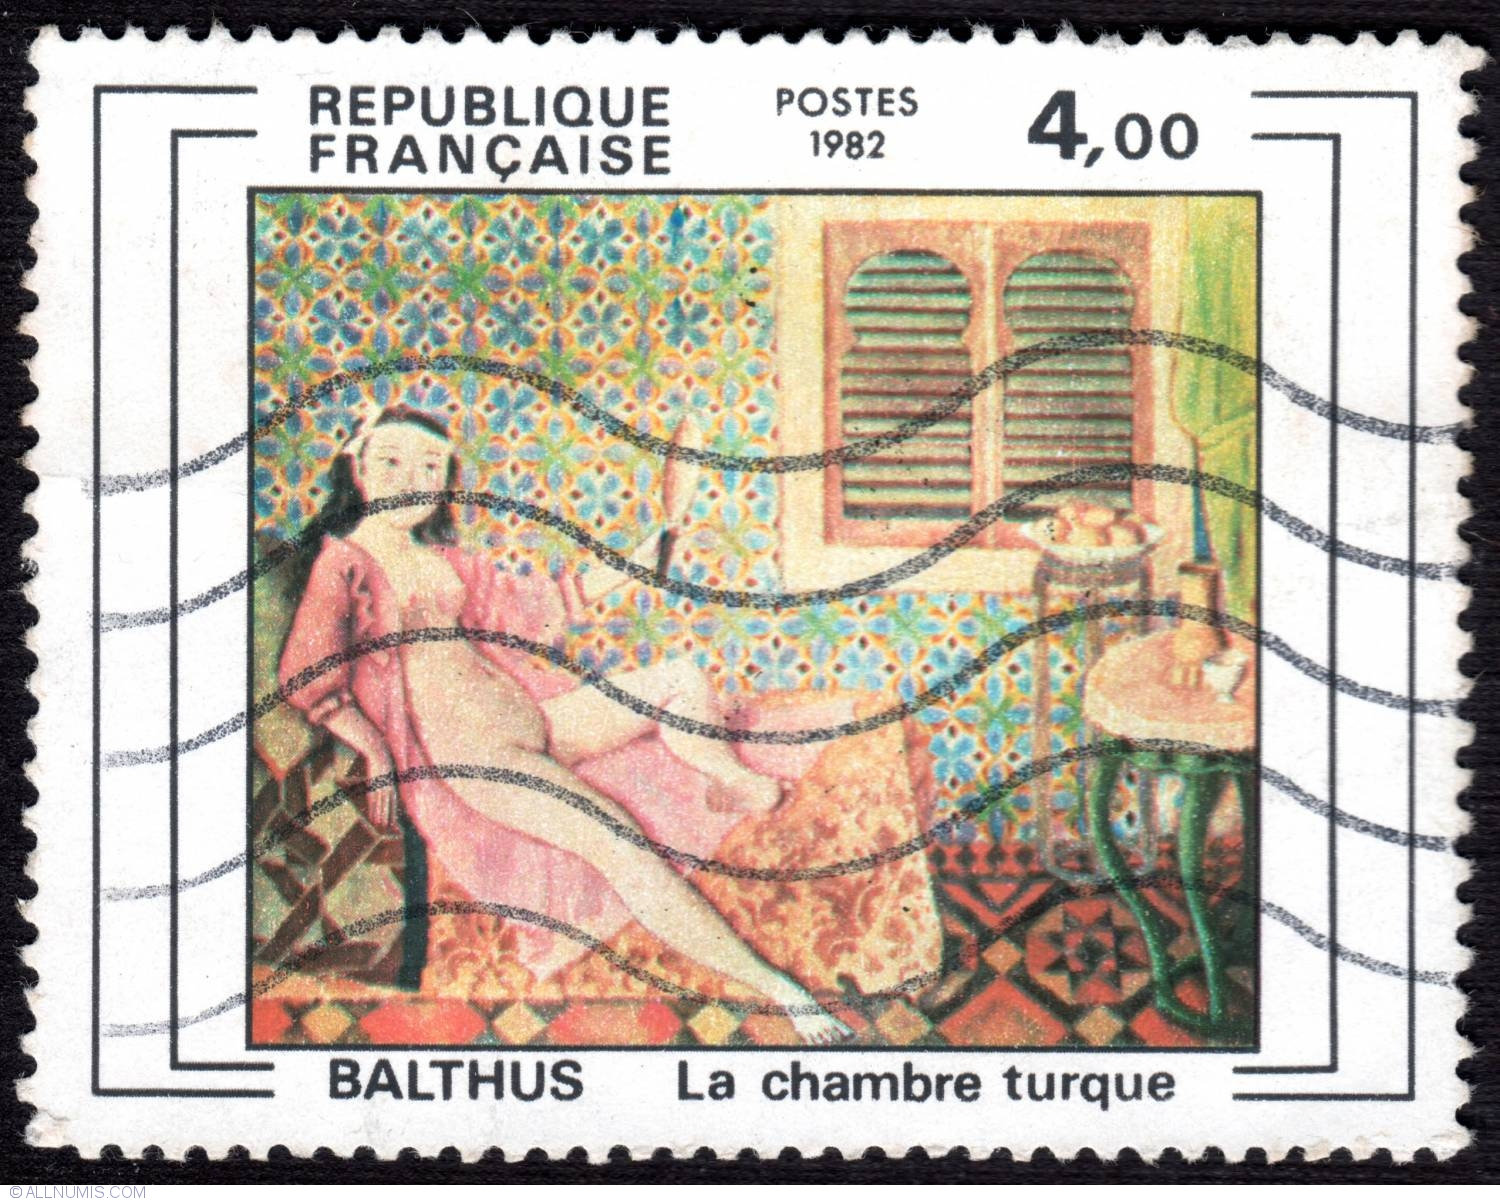 4 00 fr balthus la chambre turque 1982 art painting for Balthus la chambre turque